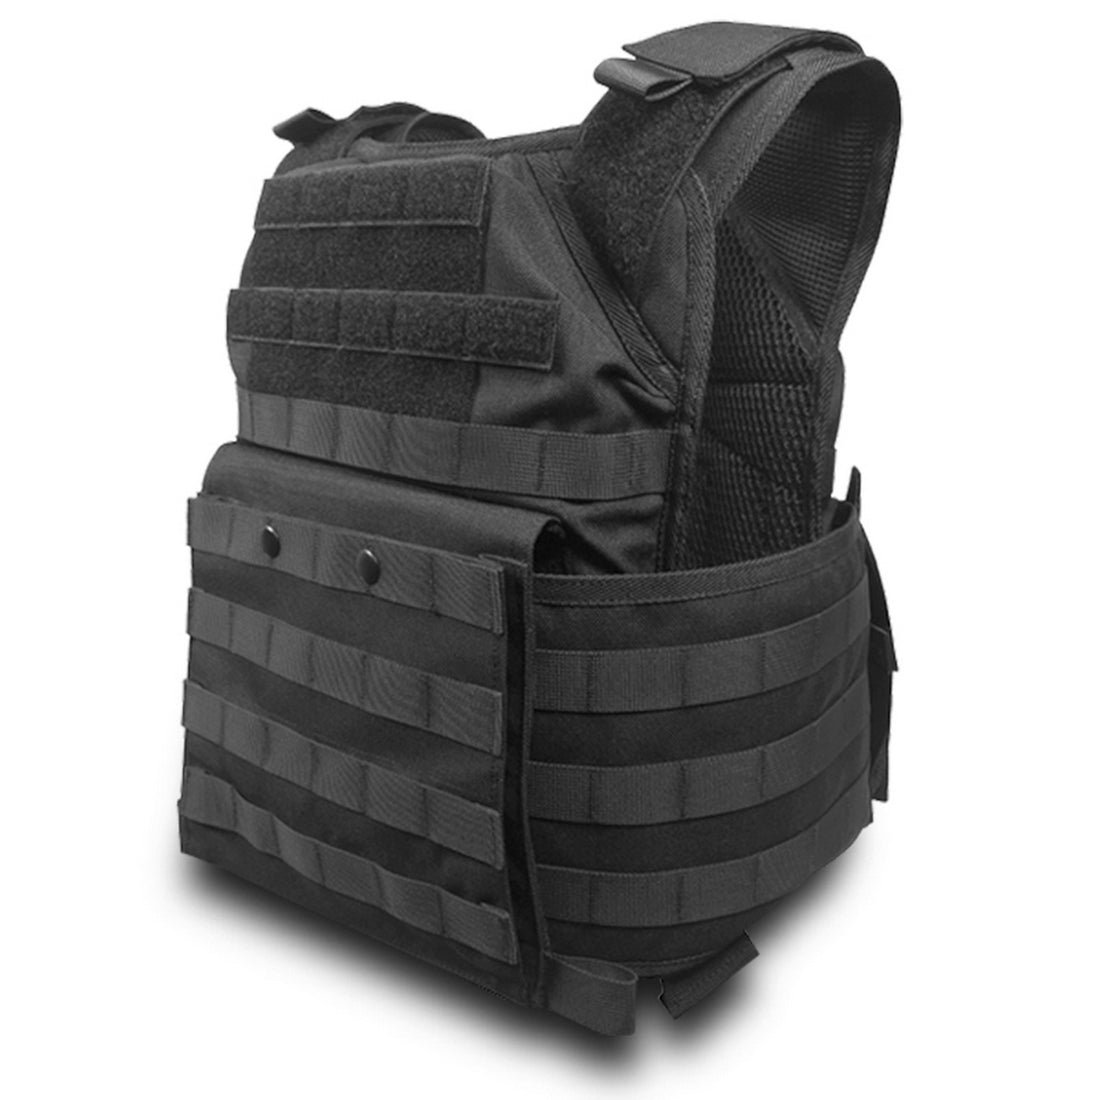 SecPro Spartan Tactical Plate Carrier